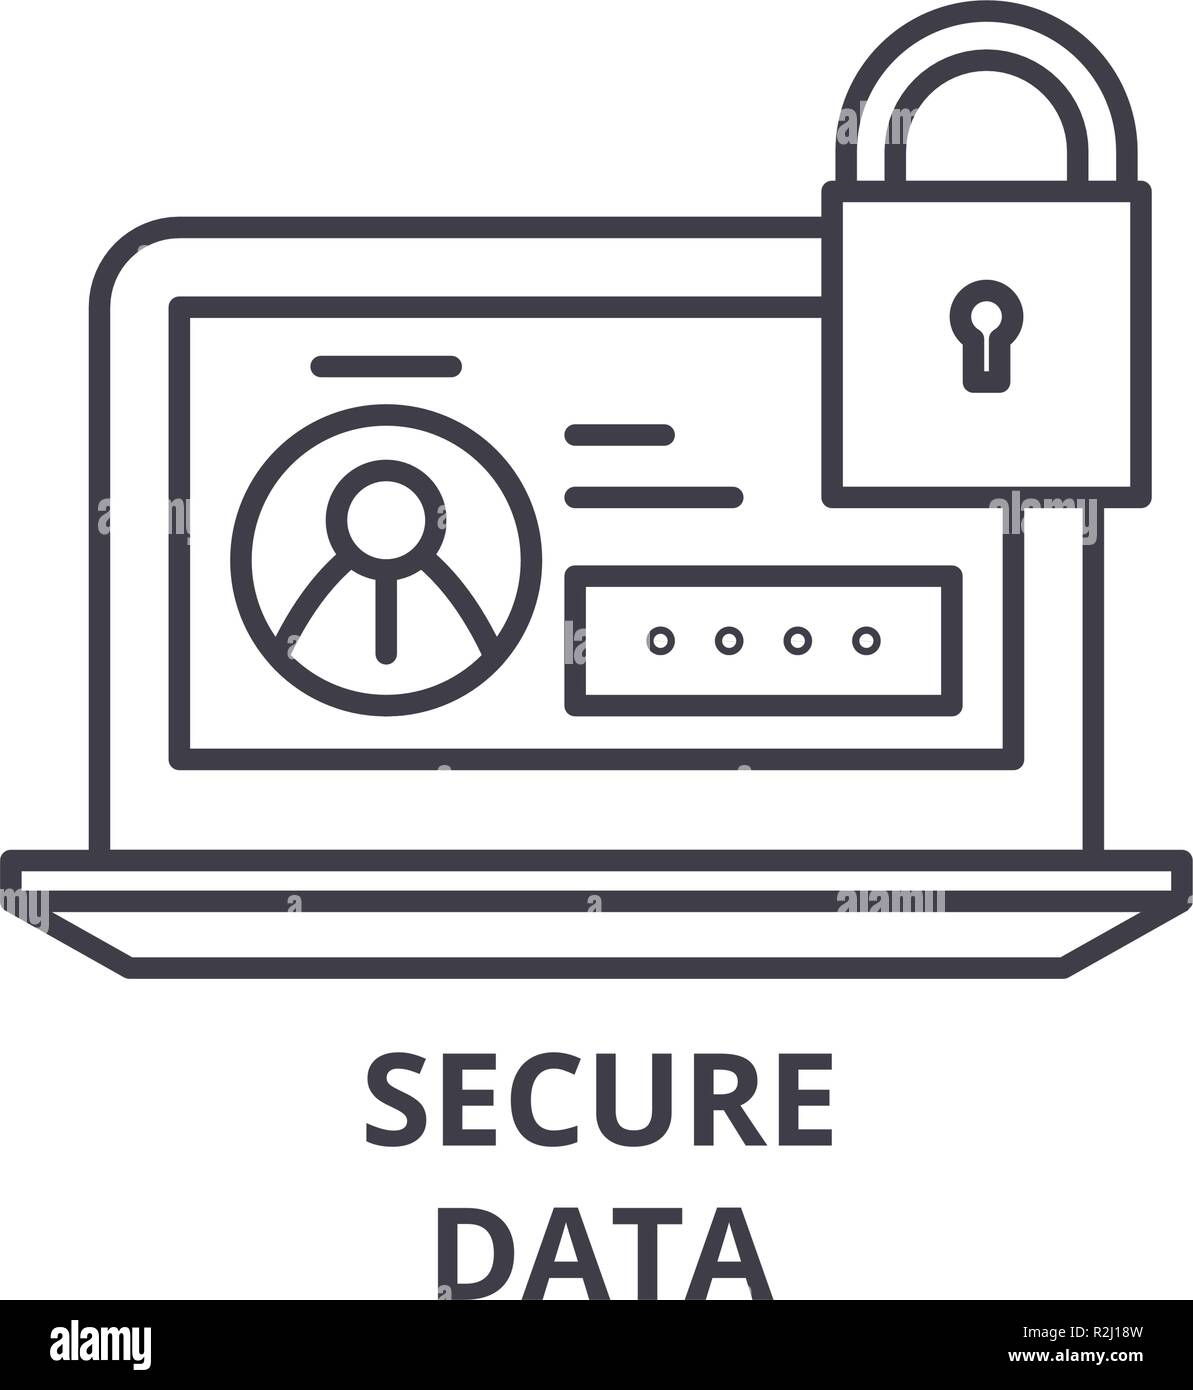 Secure data line icon concept. Secure data vector linear illustration, symbol, sign - Stock Image